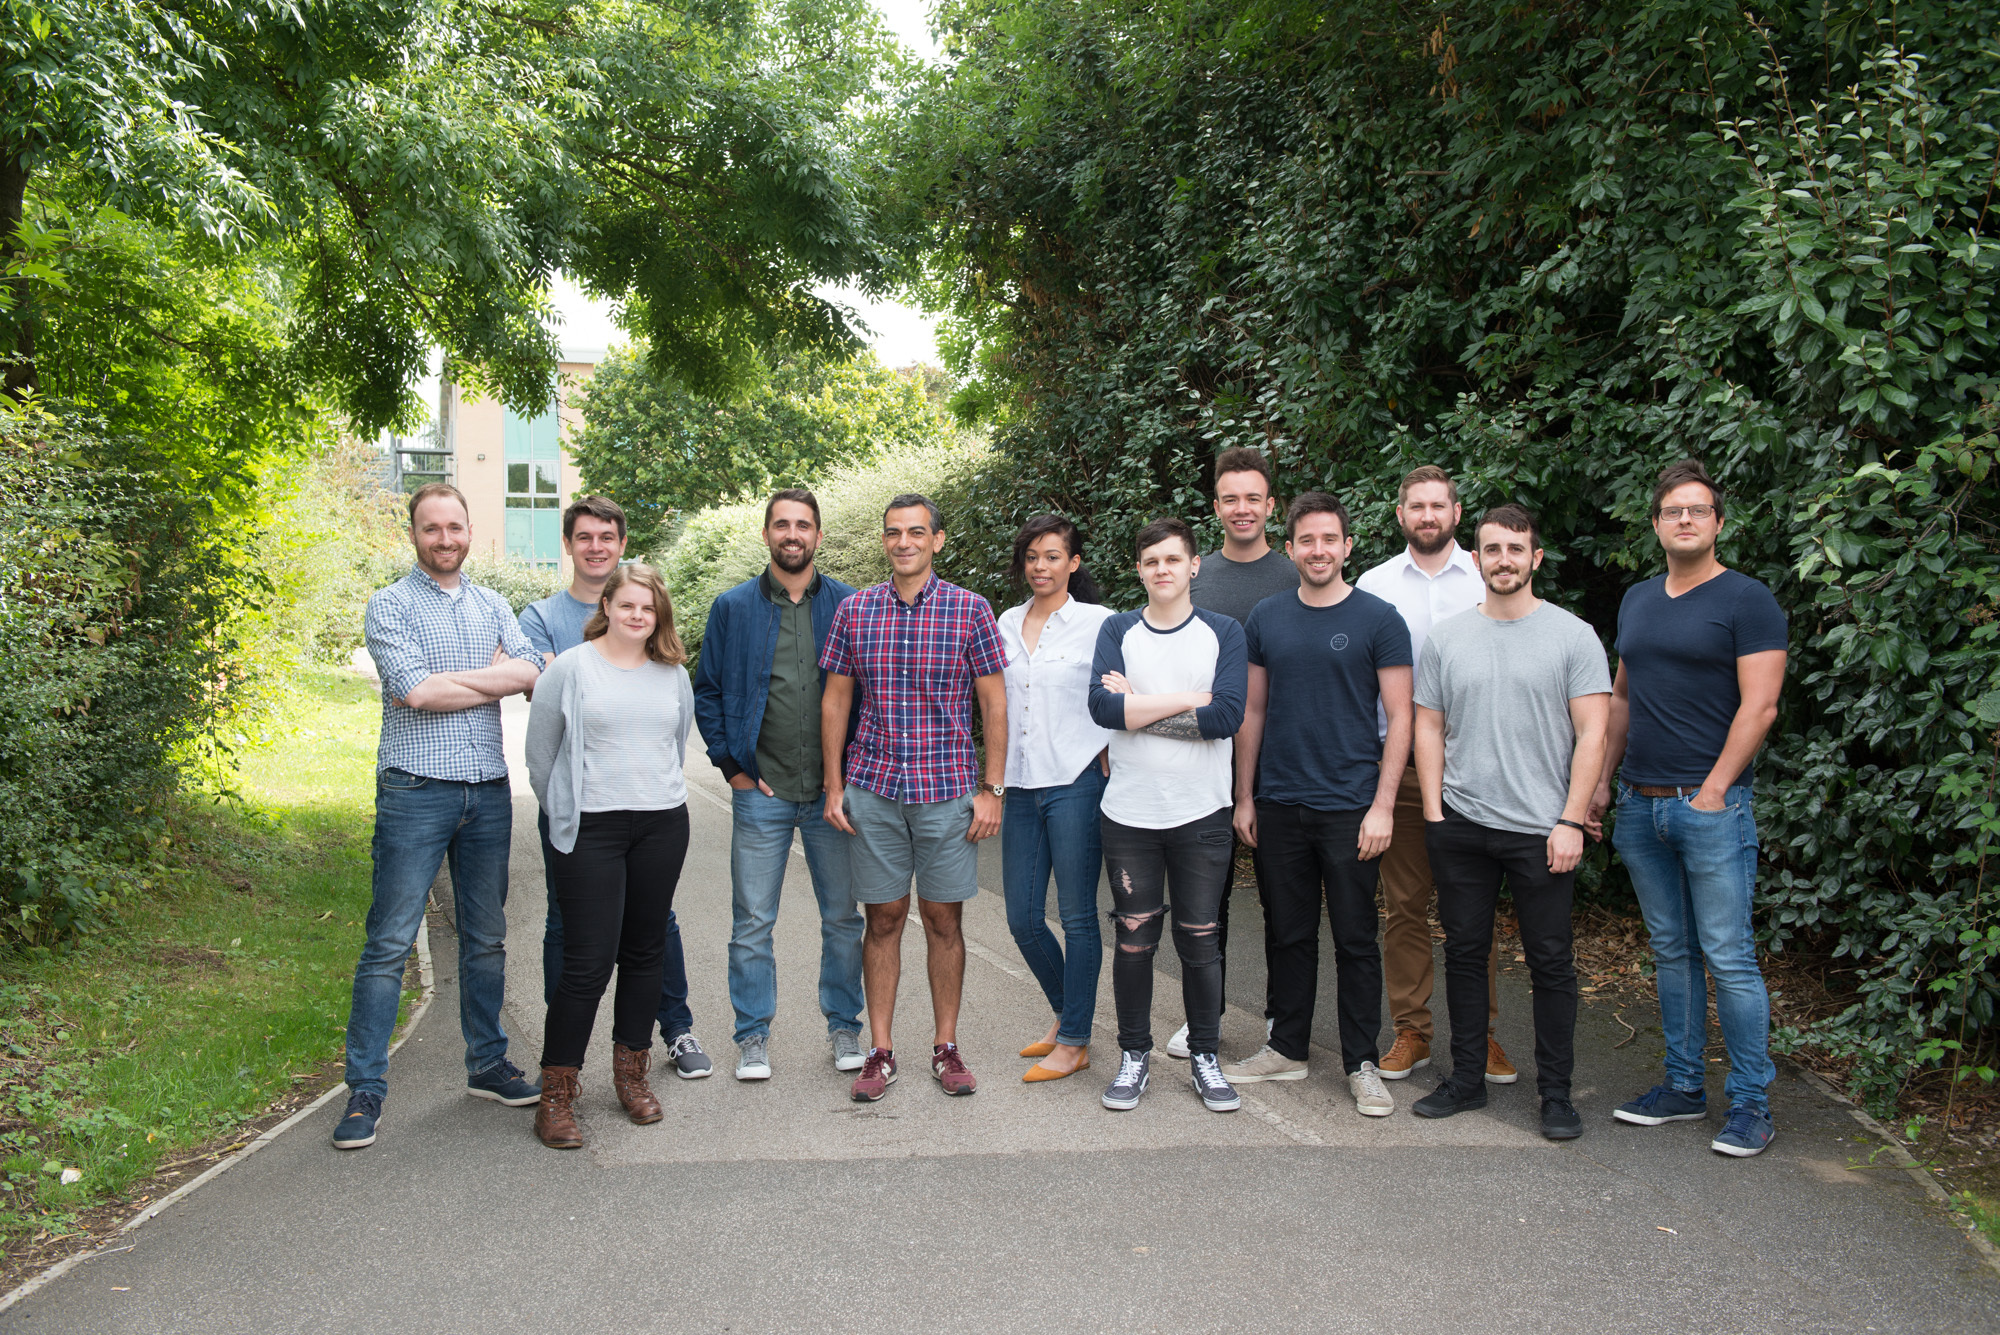 The Rotacloud team with the three founders: David Brandon (fifth from right), Joel Beverley (fourth from right), James Lintern (second from right)